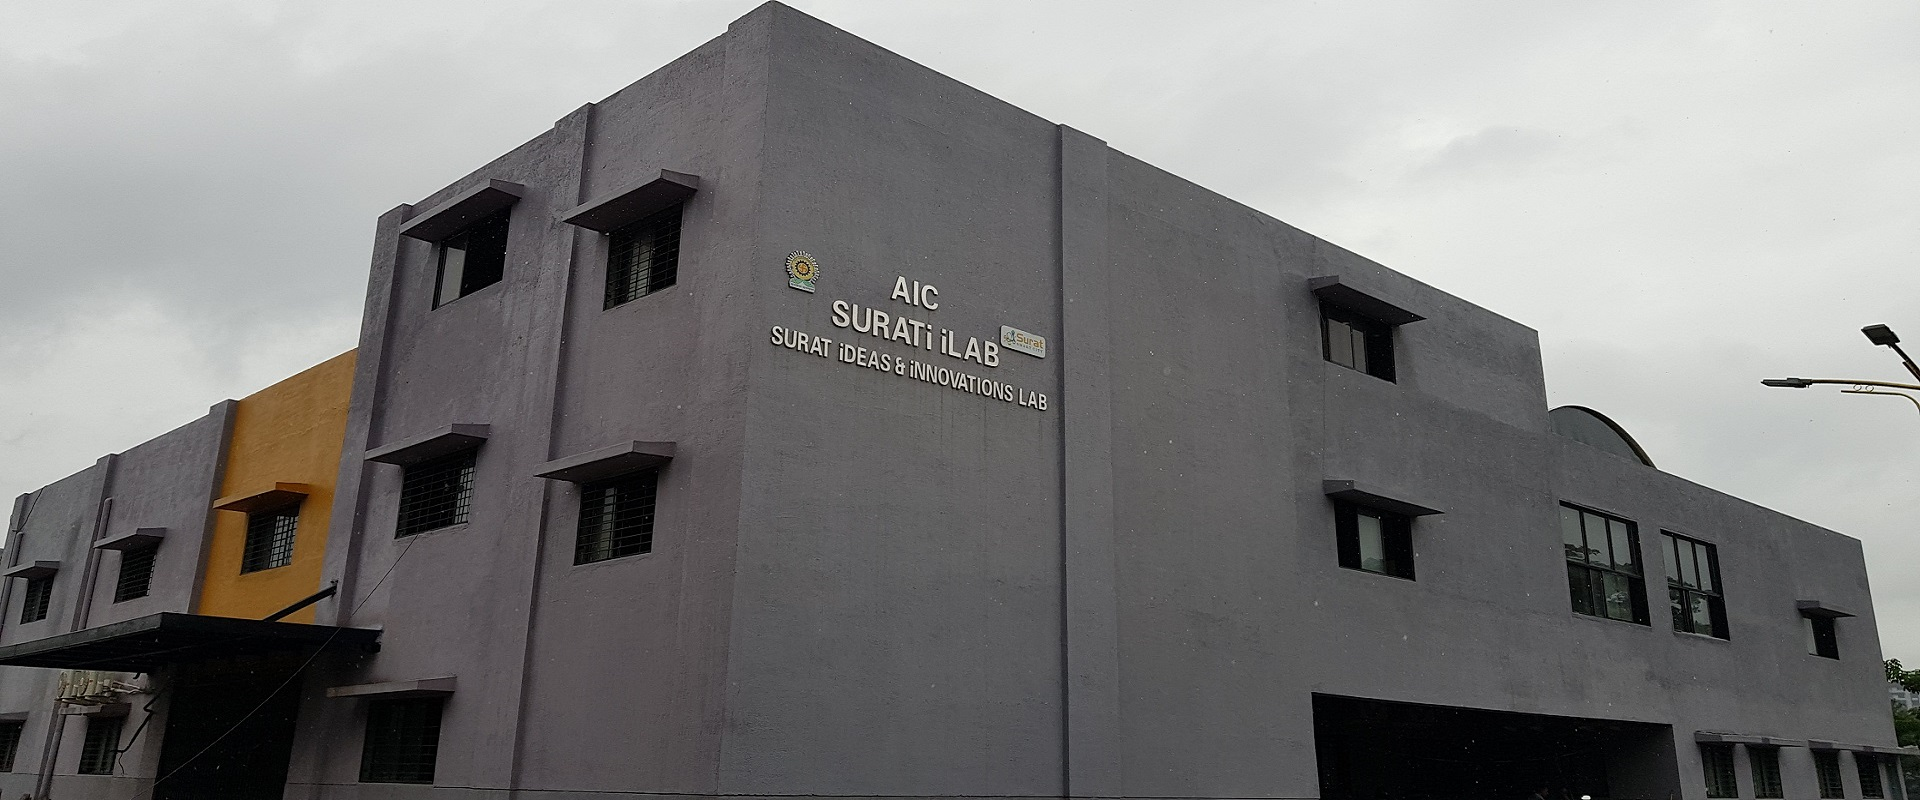 AIC SURATi iLAB Foundation